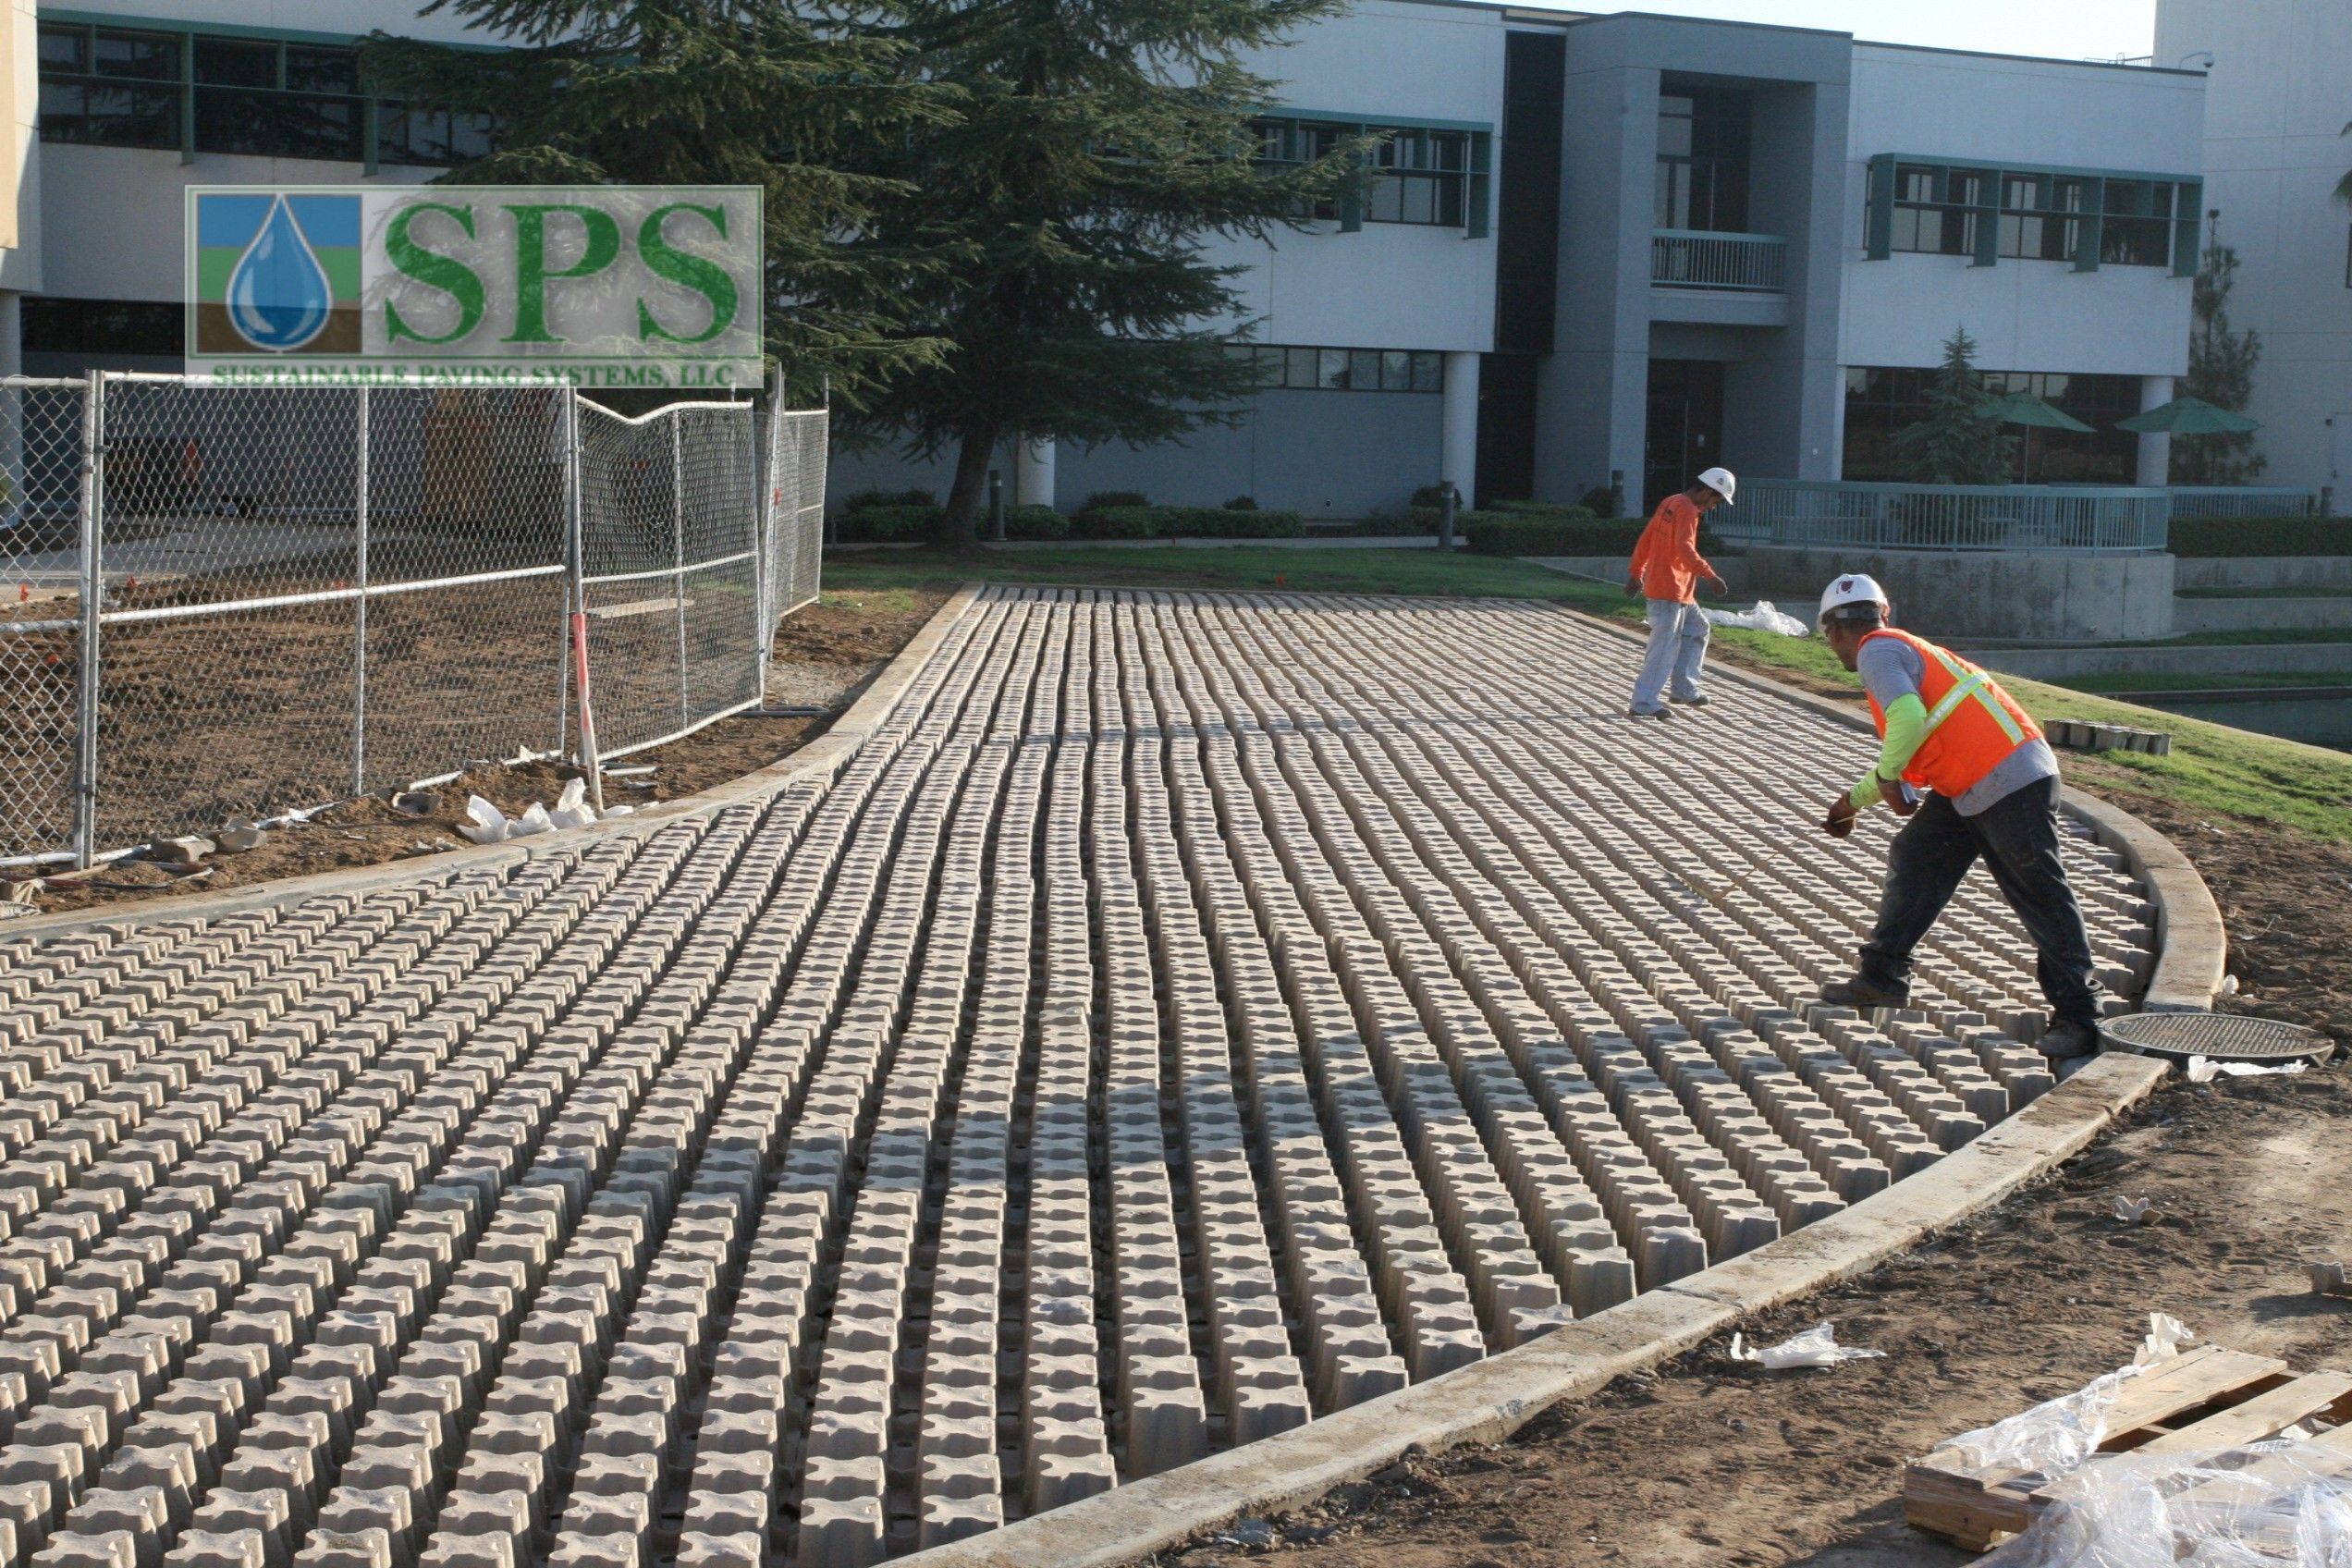 Molded Pulp Formers were installed here with rebar for reinforcement, concrete to create the pavement surface, and grass fill in the removed former tops to create a sustainable and durable Grasscrete emergency vehicle access road.